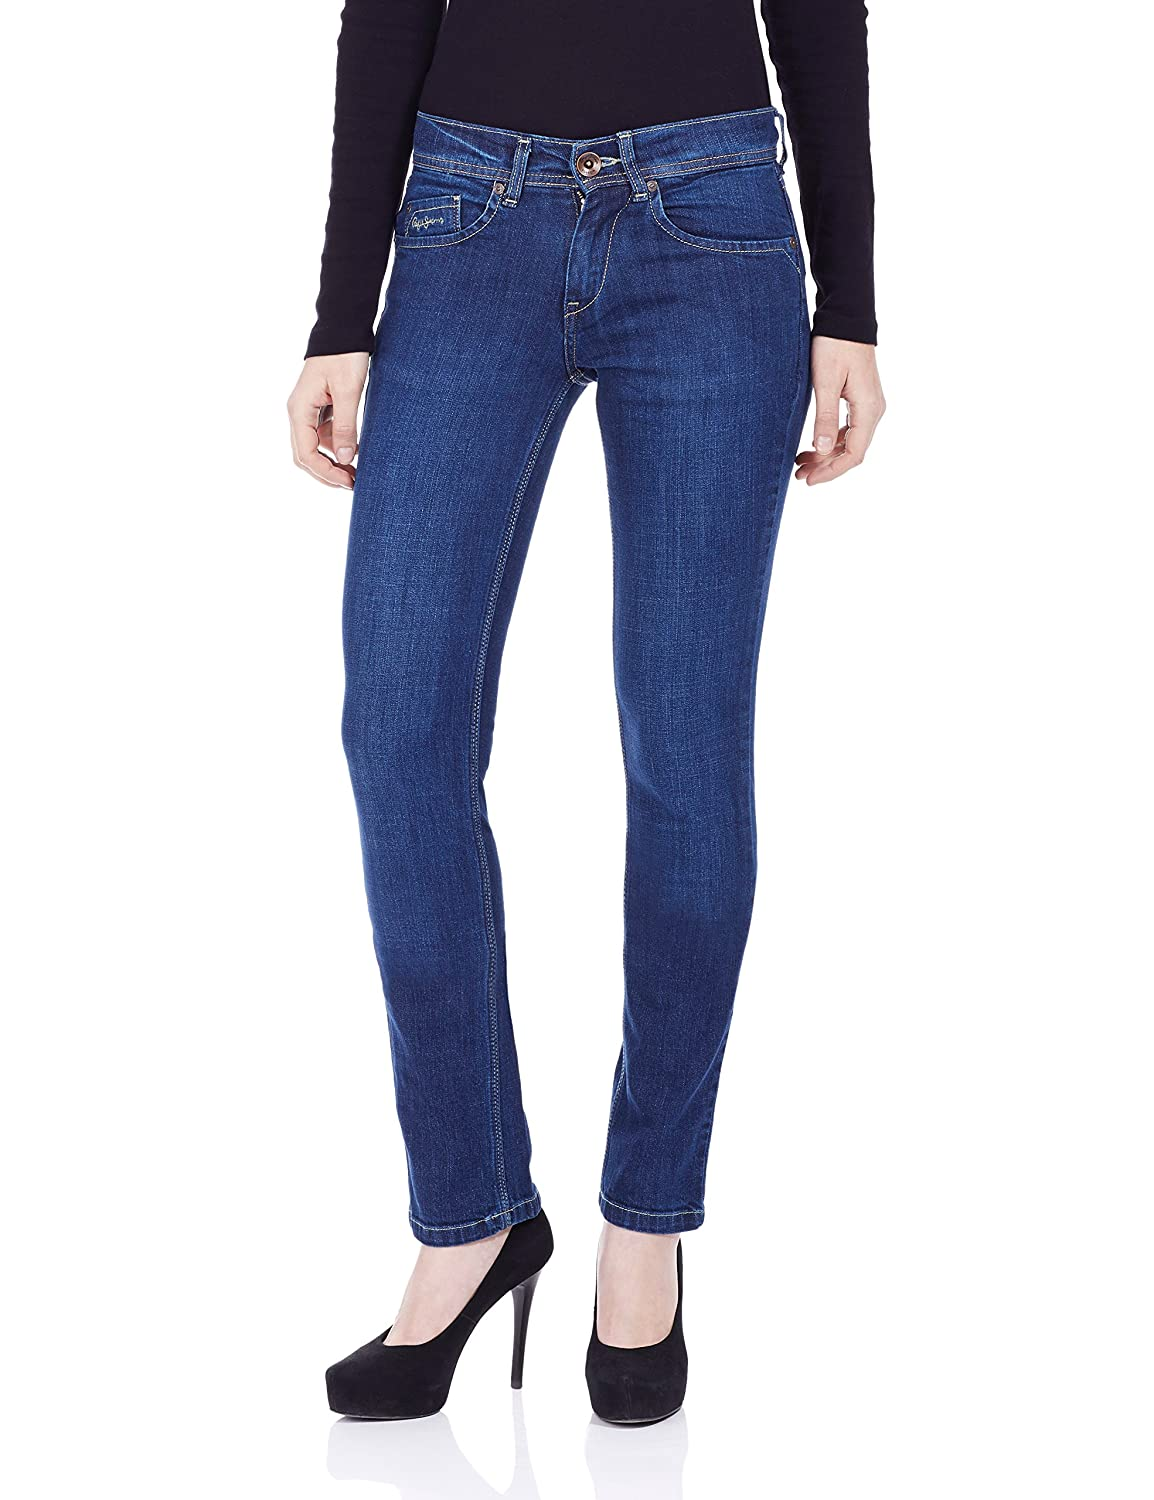 9a7c97c6415 Pepe Jeans Women s Slim Jeans  Amazon.in  Clothing   Accessories